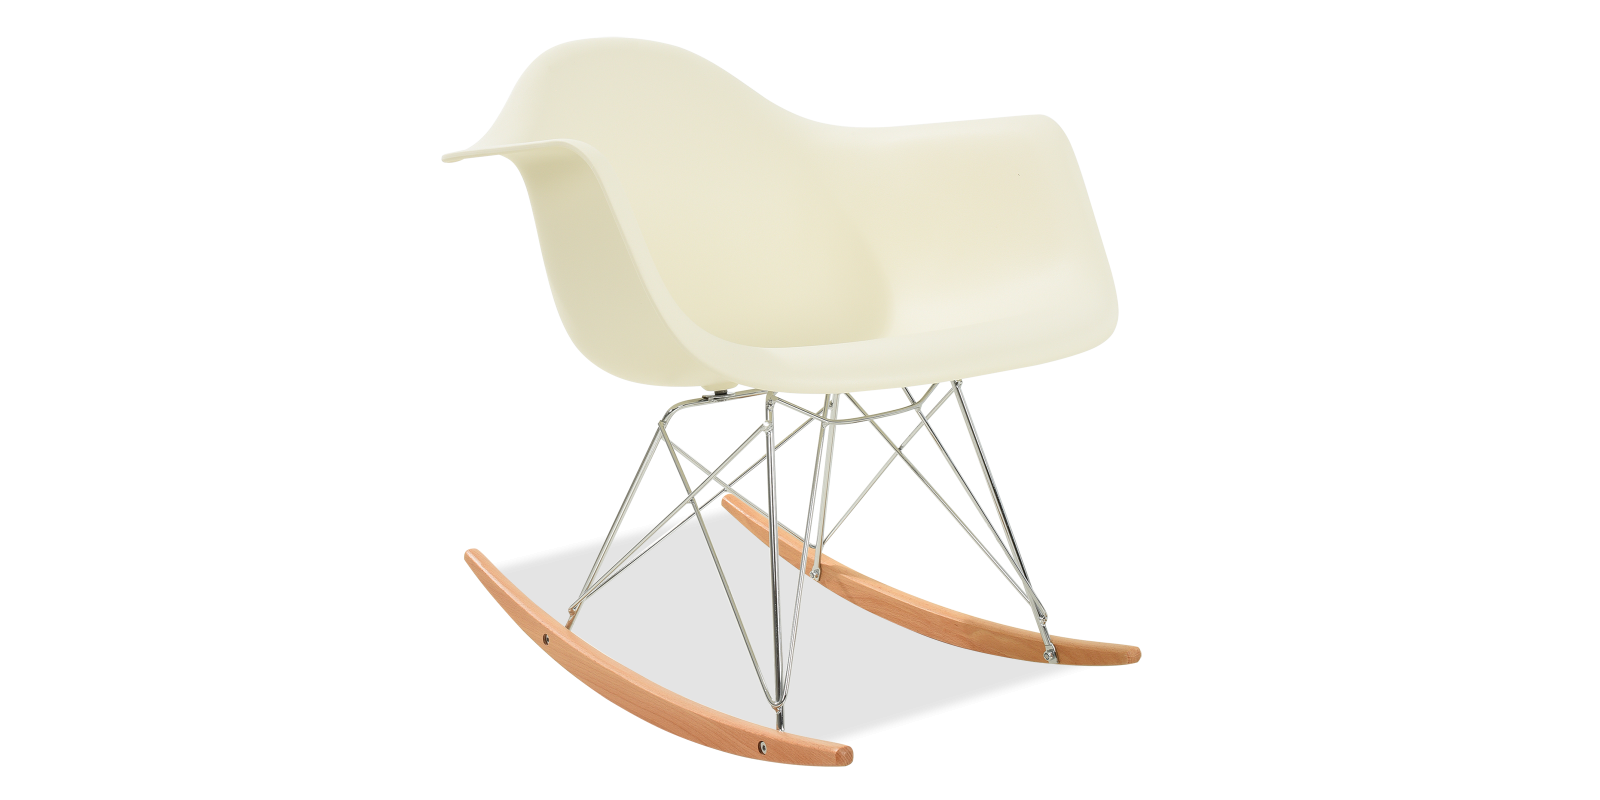 Eames Rocker Chair Replica Shapeyourmindscom